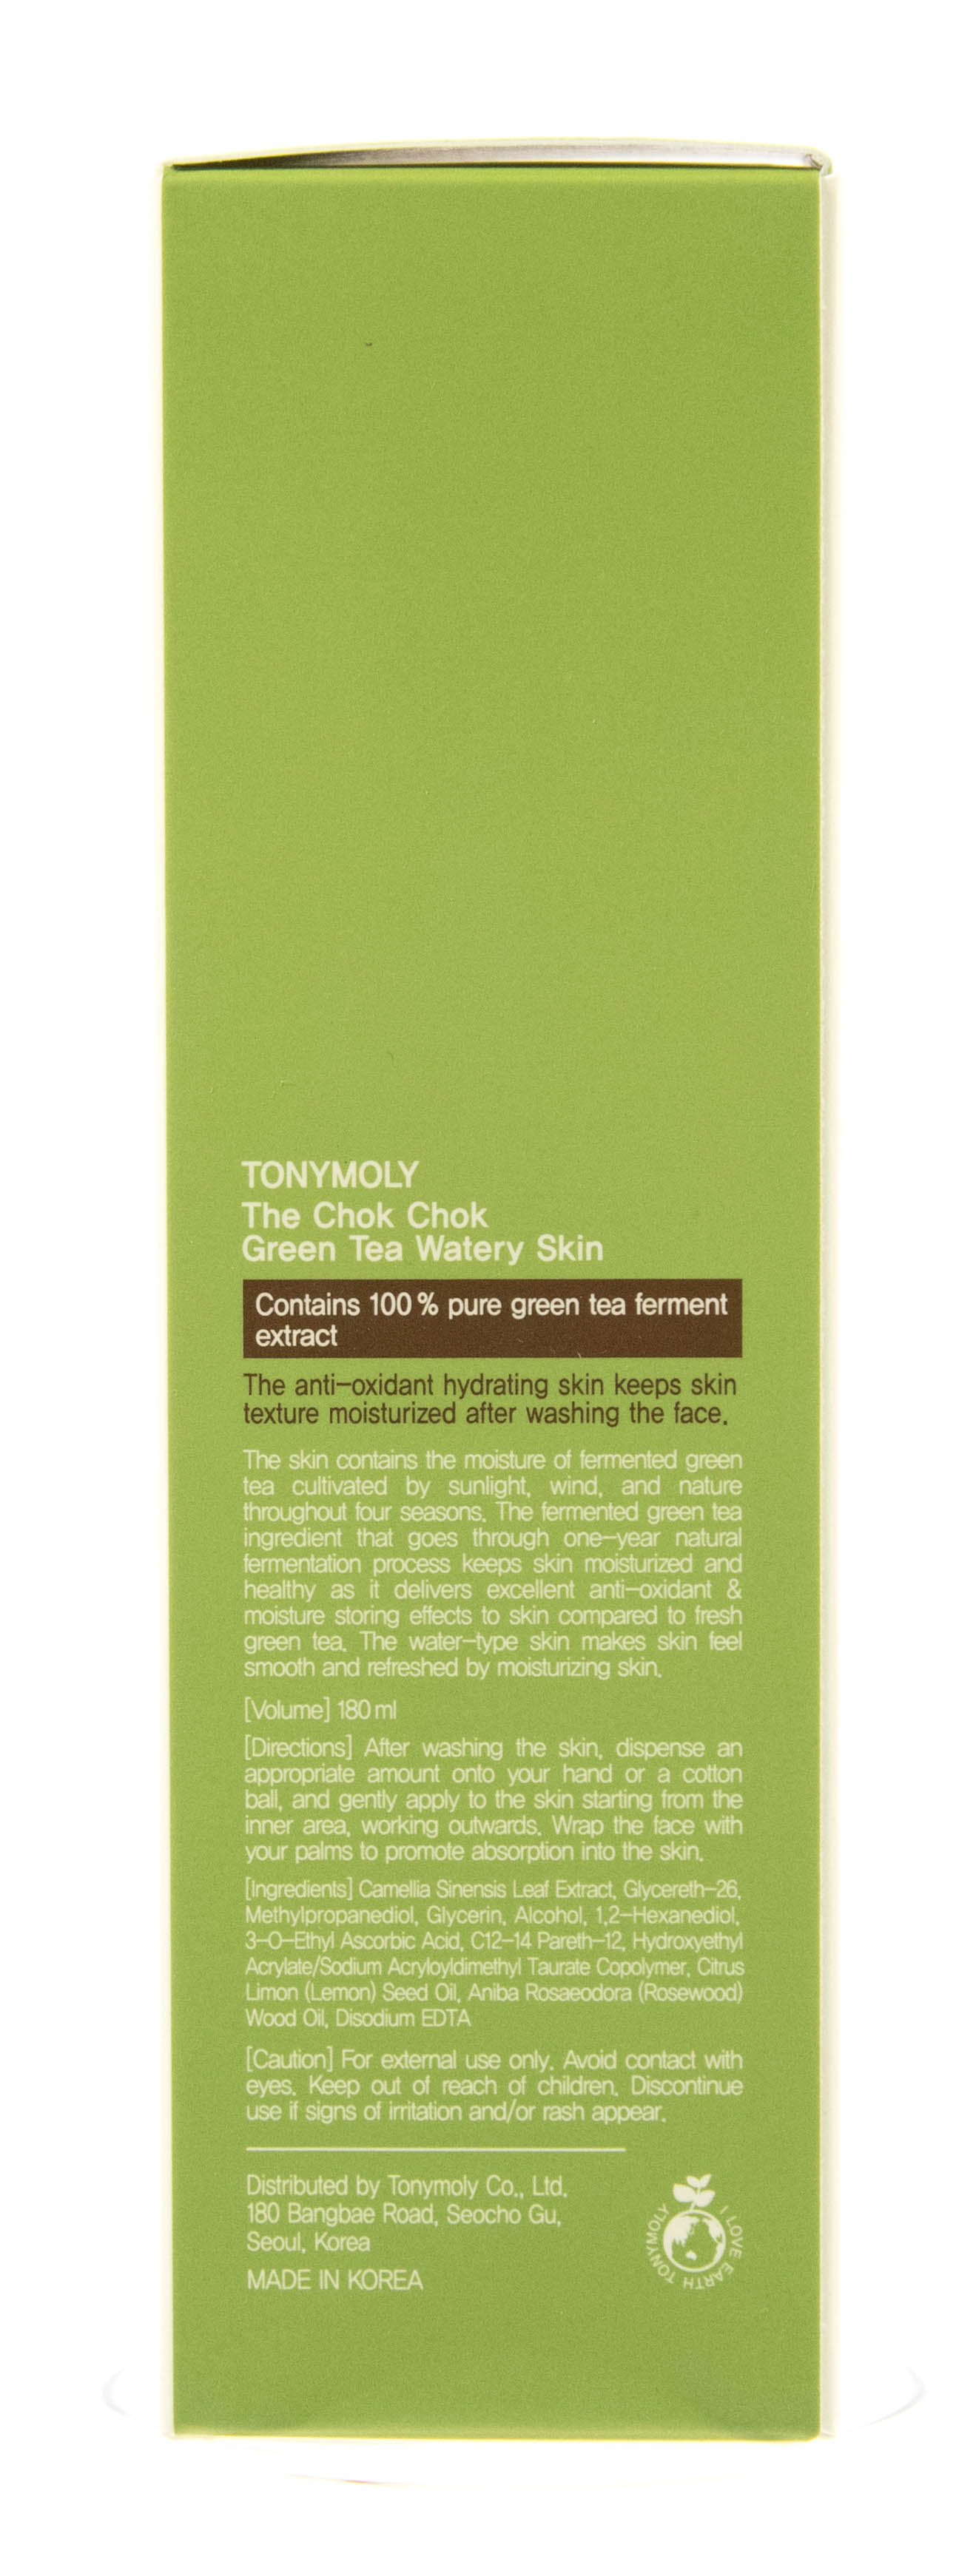 Тони Моли Лосьон с экстрактом зеленого чая 180 мл (Tony Moly, Green Tea) фото 4